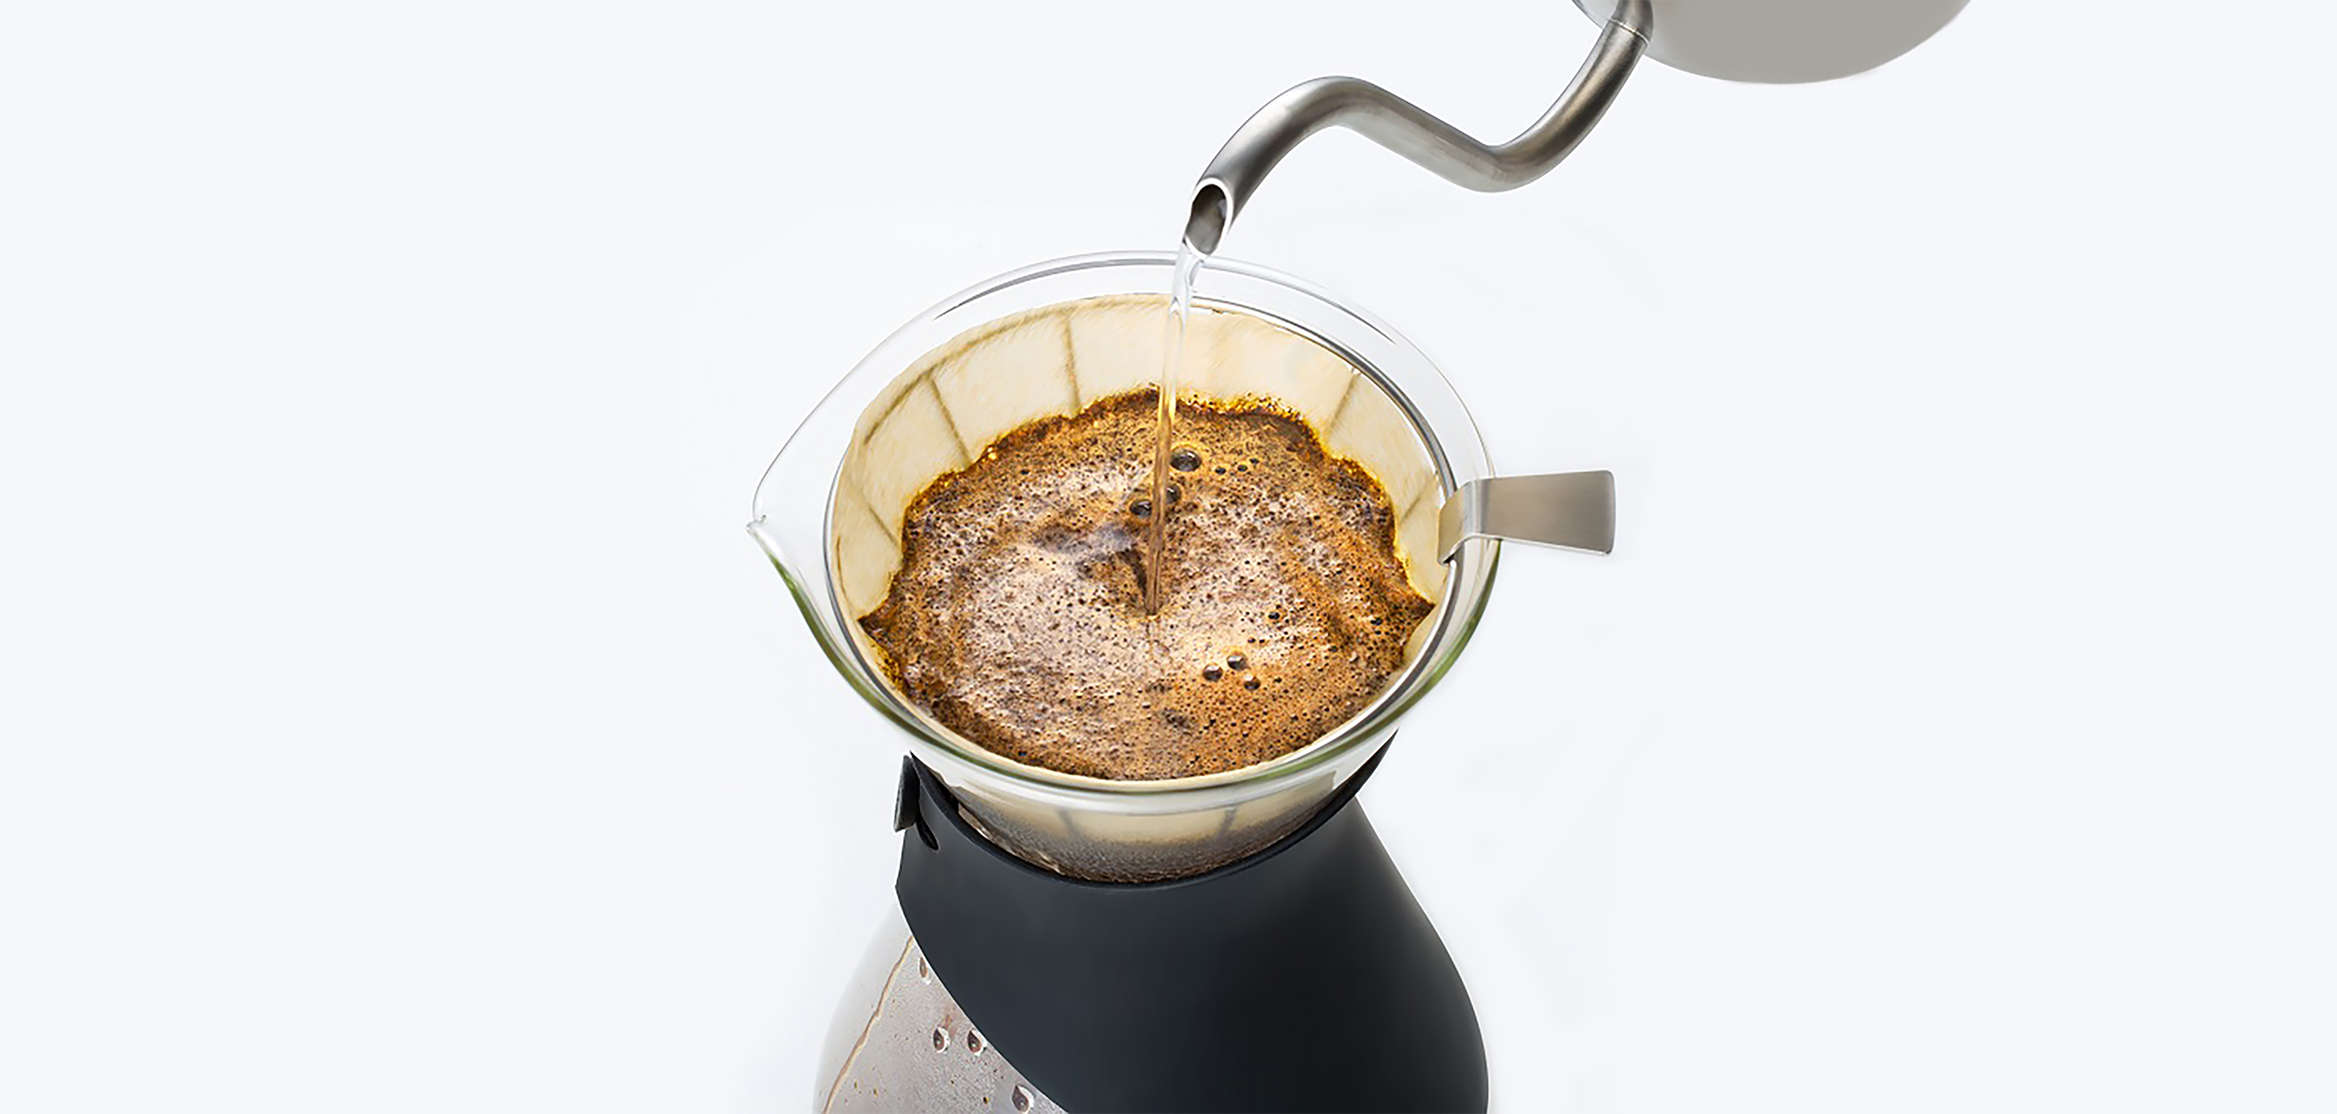 Pour Over Coffee Ratio How Much Coffee To Use For Pour Over - SAKI